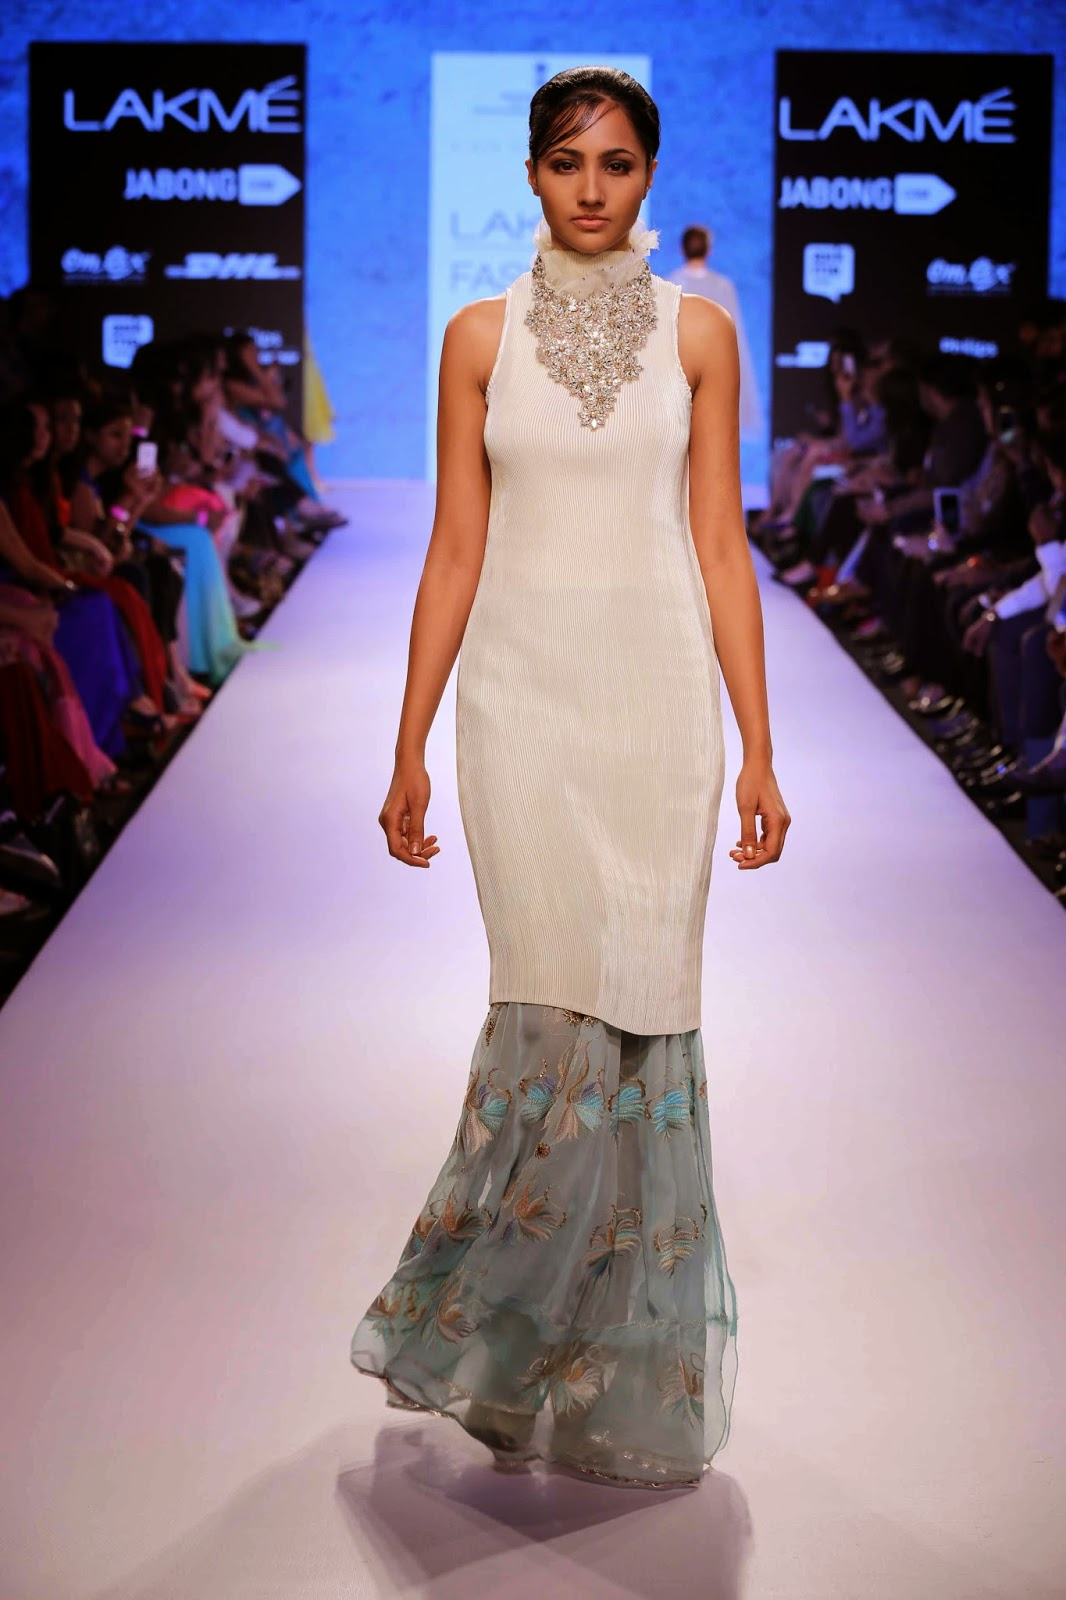 http://aquaintperspective.blogspot.in/, LIFW Day 2, Kiran Uttam Ghosh